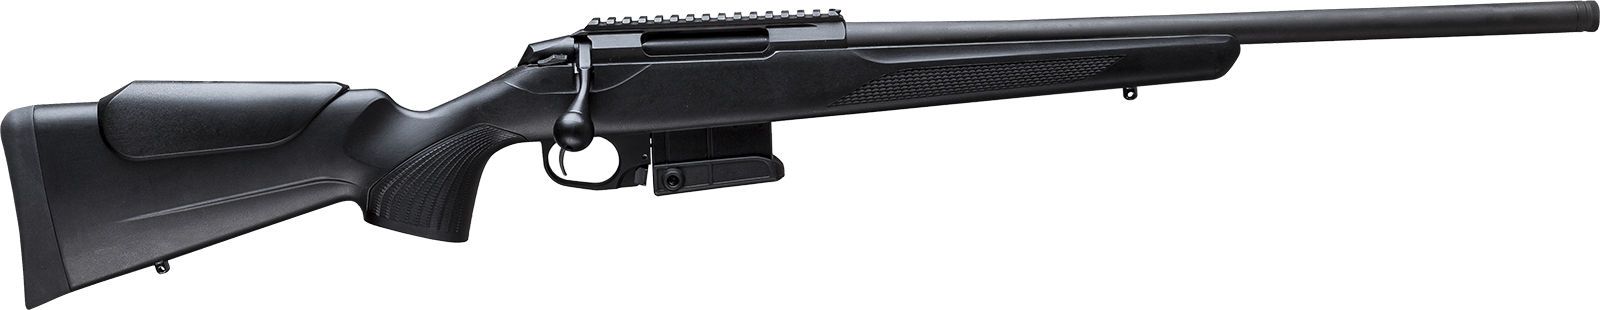 T3x Compact Tactical Rifle Tikka